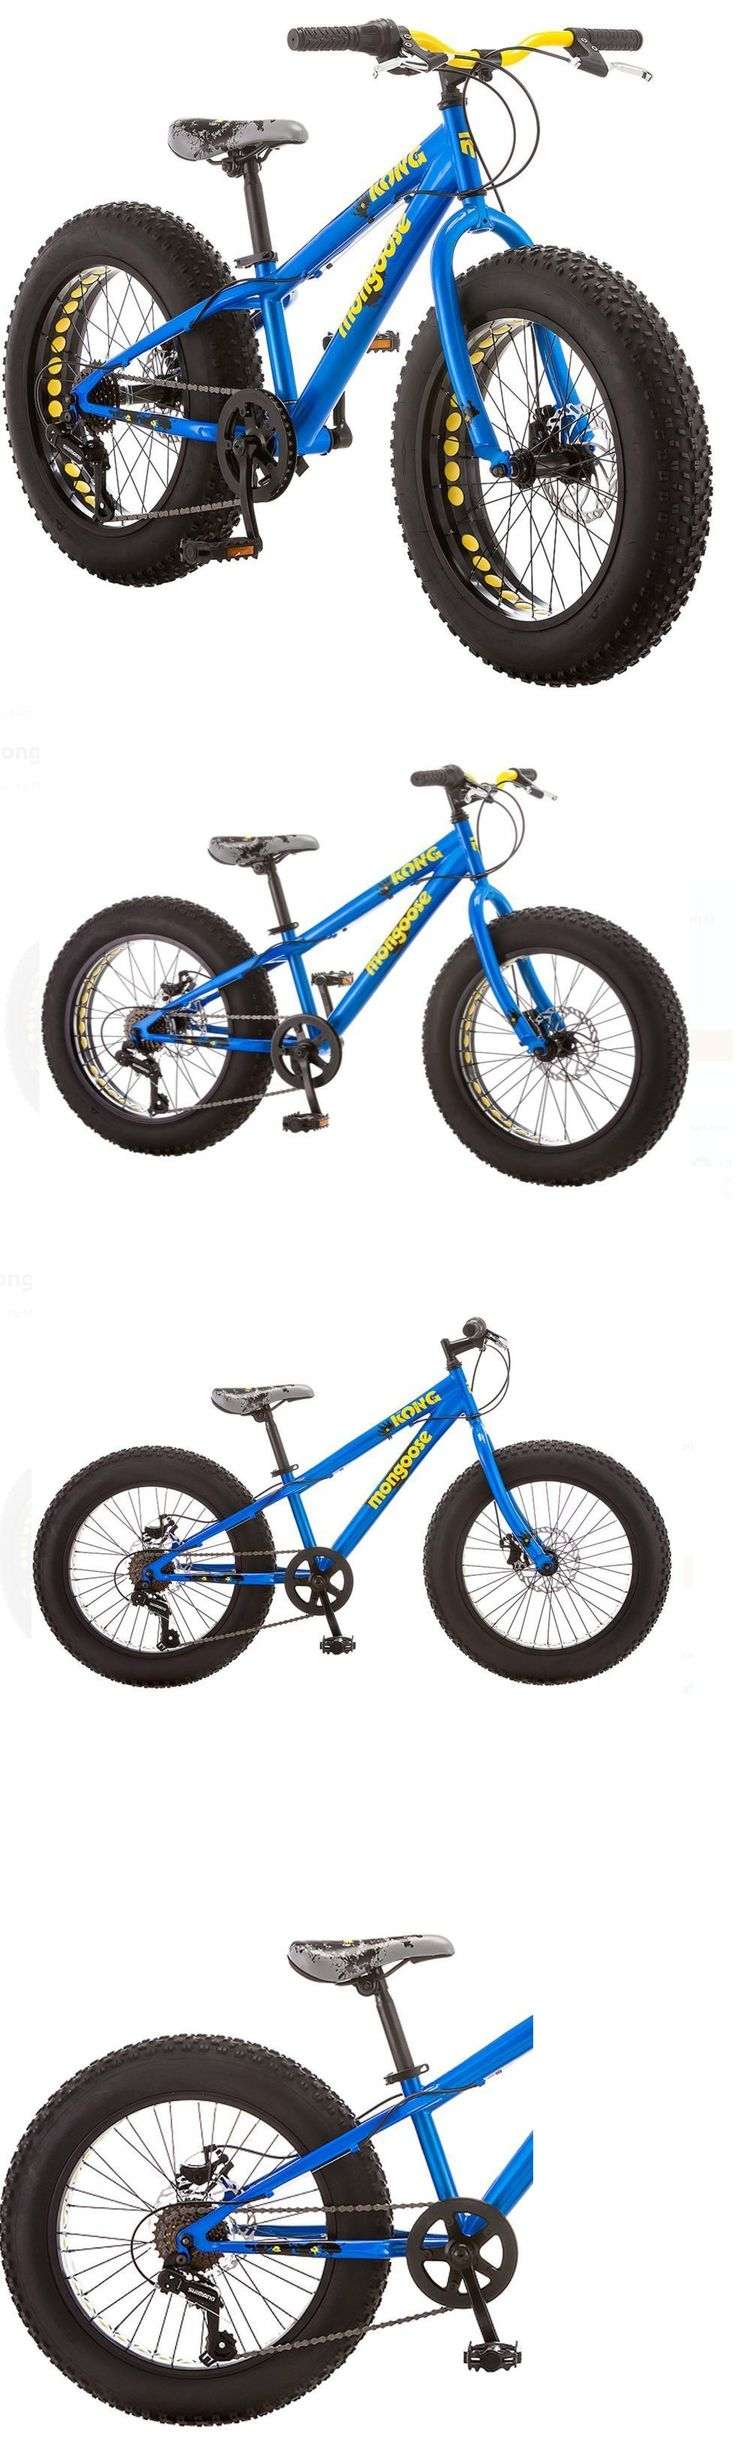 Other Cycling 2904: Mongoose Bike 20 Inch Boys Fat Tire Bikes Kong 7-Speed Boy Mountain Bicycles -> BUY IT NOW ONLY: $241.99 on eBay!